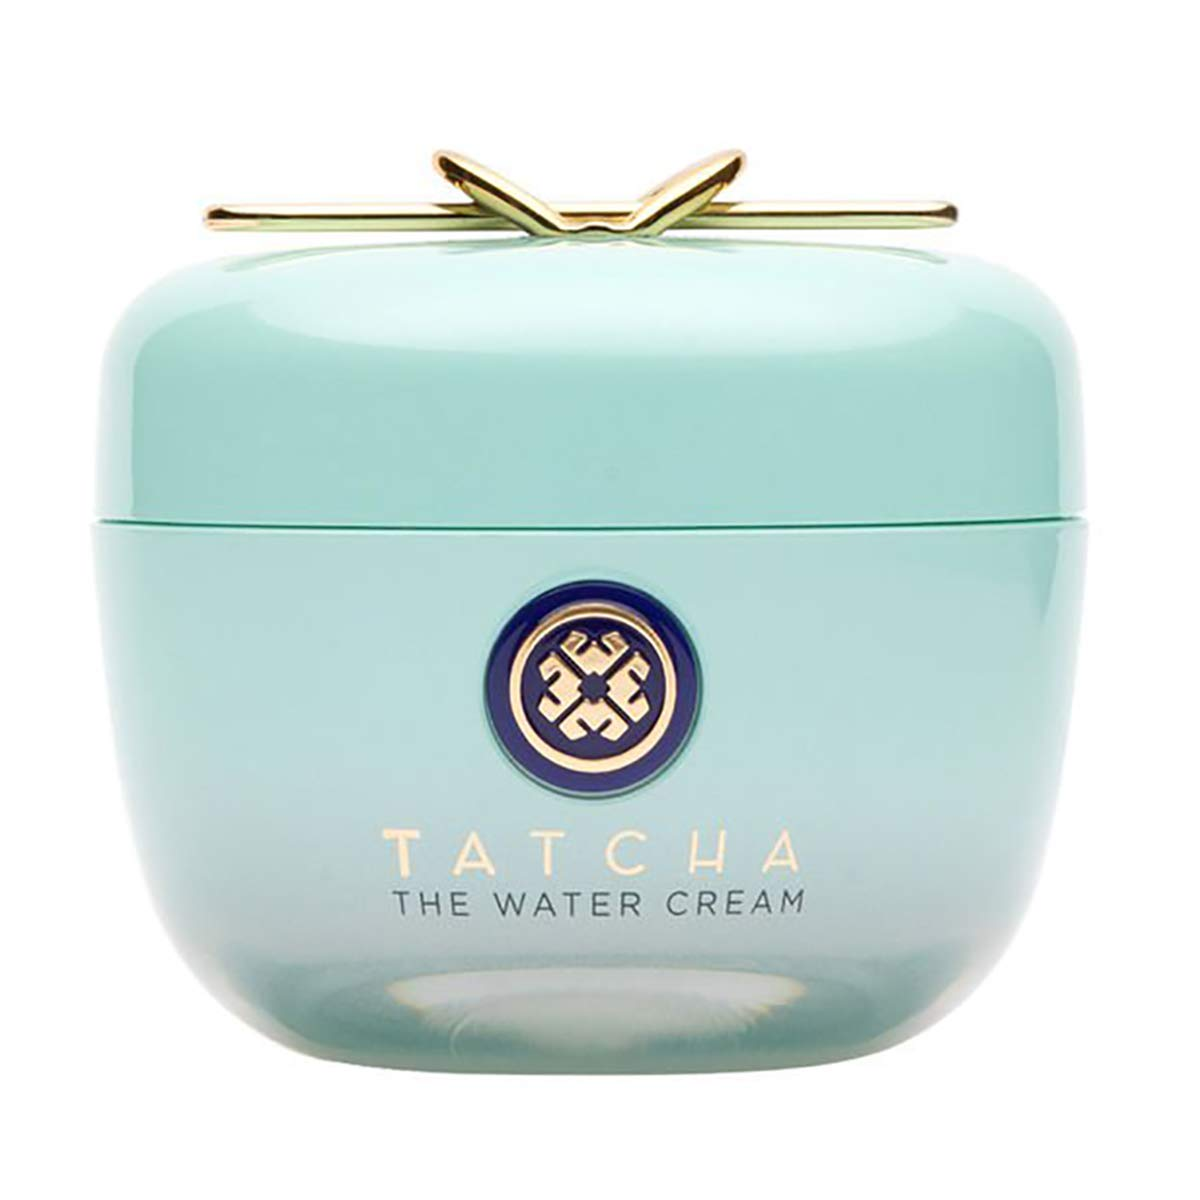 Tatcha The Water Cream - 50 milliliters / 1.7 ounces by TATCHA